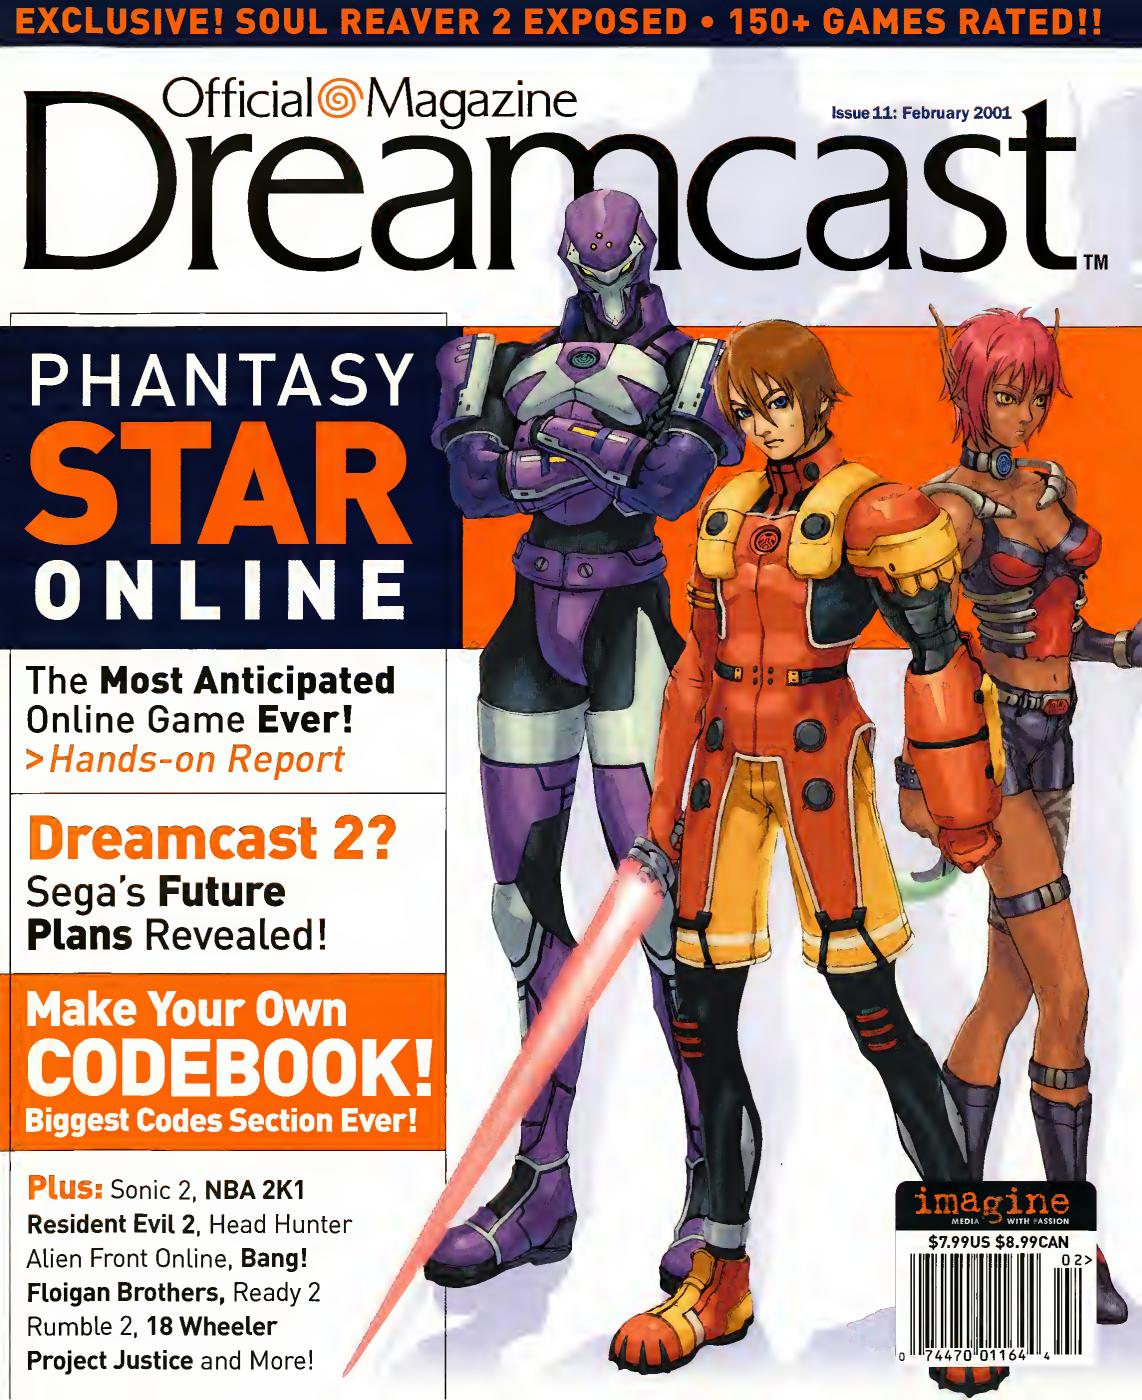 8cc13d93 Official sega dreamcast 11 feb 2001 by Willzera - issuu